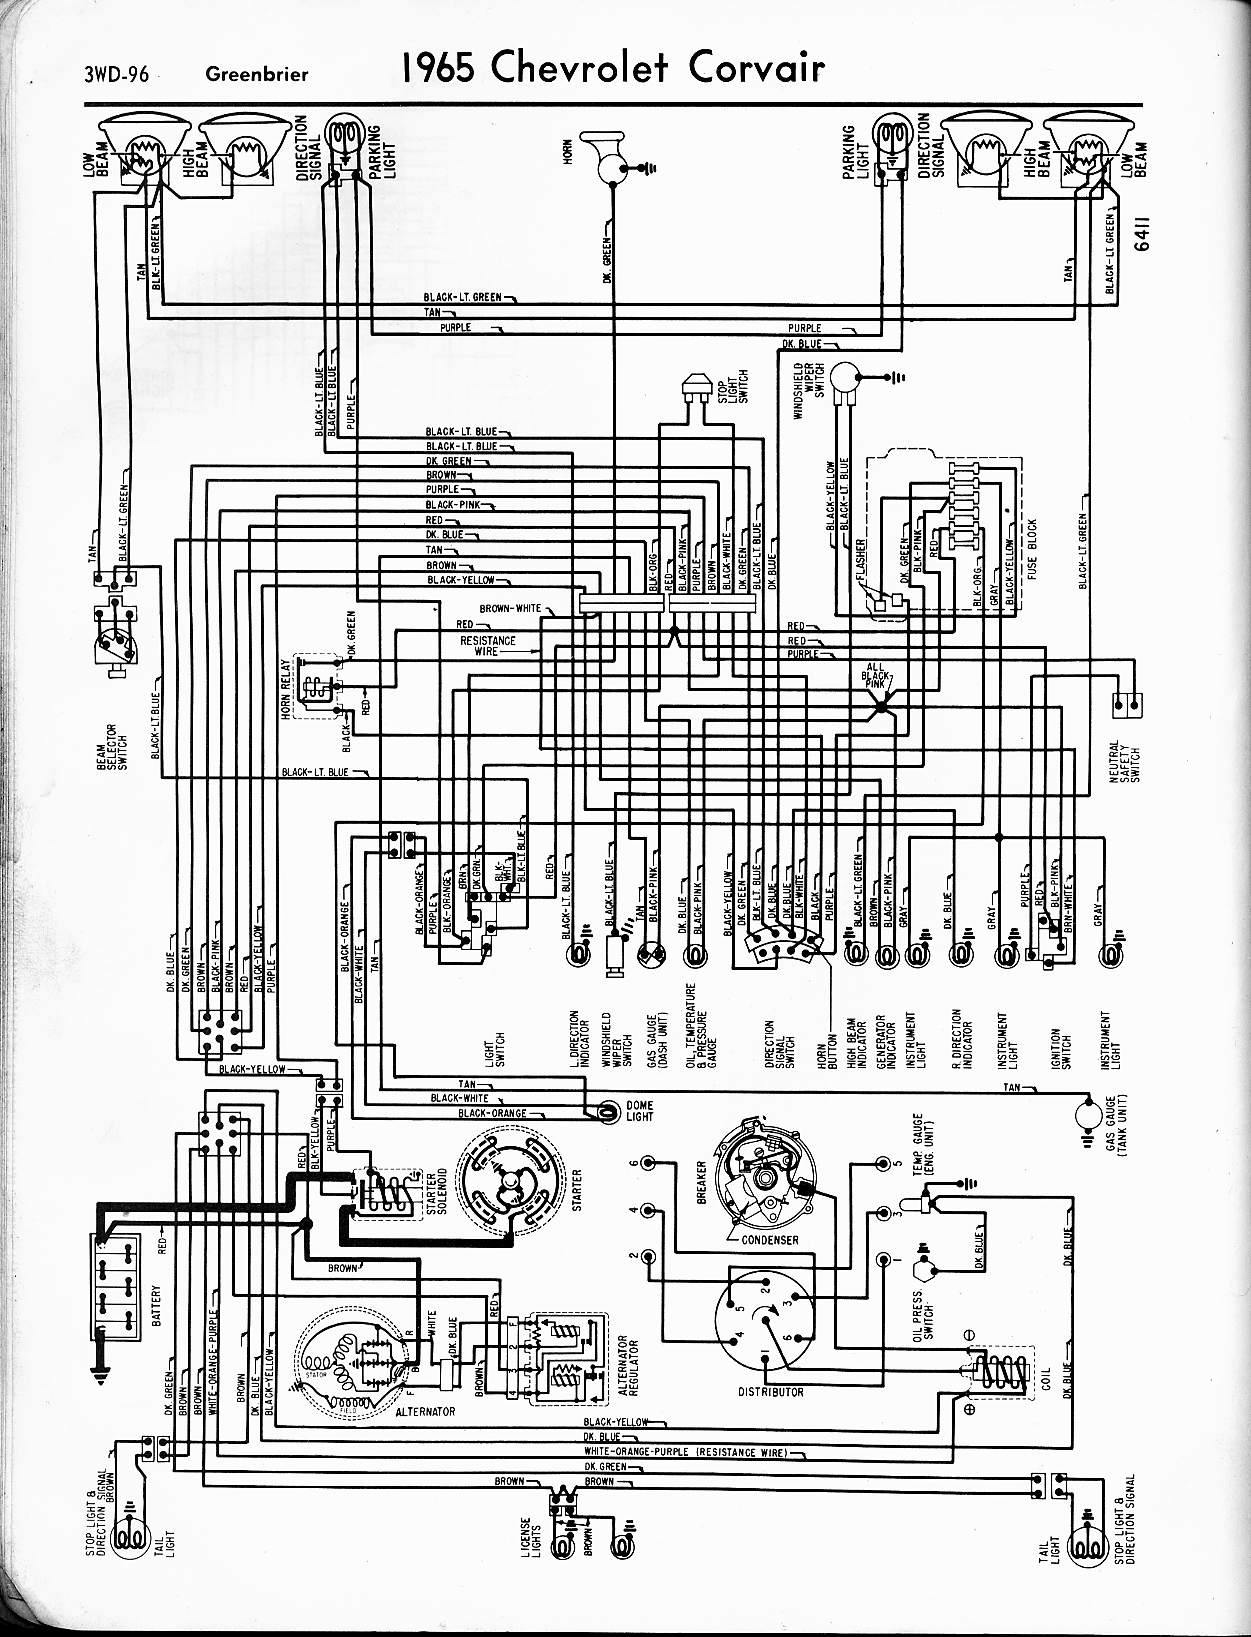 1974 chevy nova wiring harness diagram